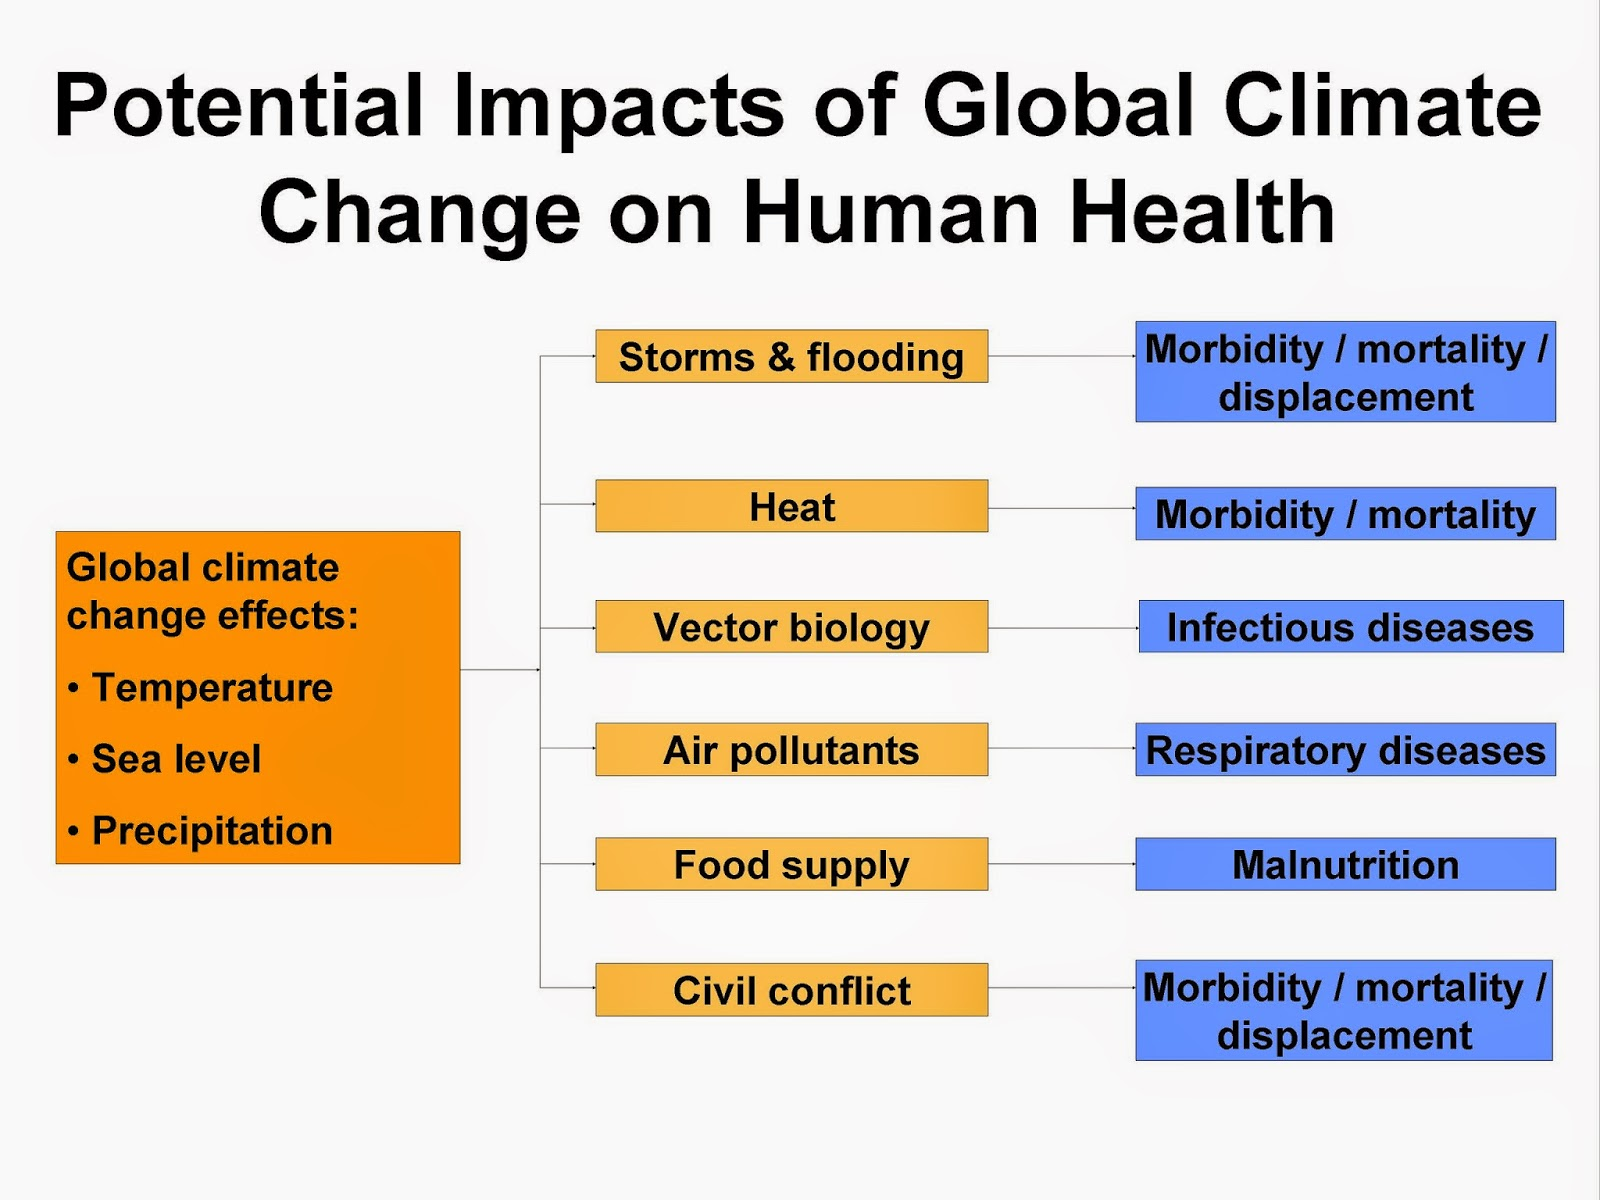 Potential impacts of global climate change on human health. (Credit: http://health.state.tn.us) Click to Enlarge.